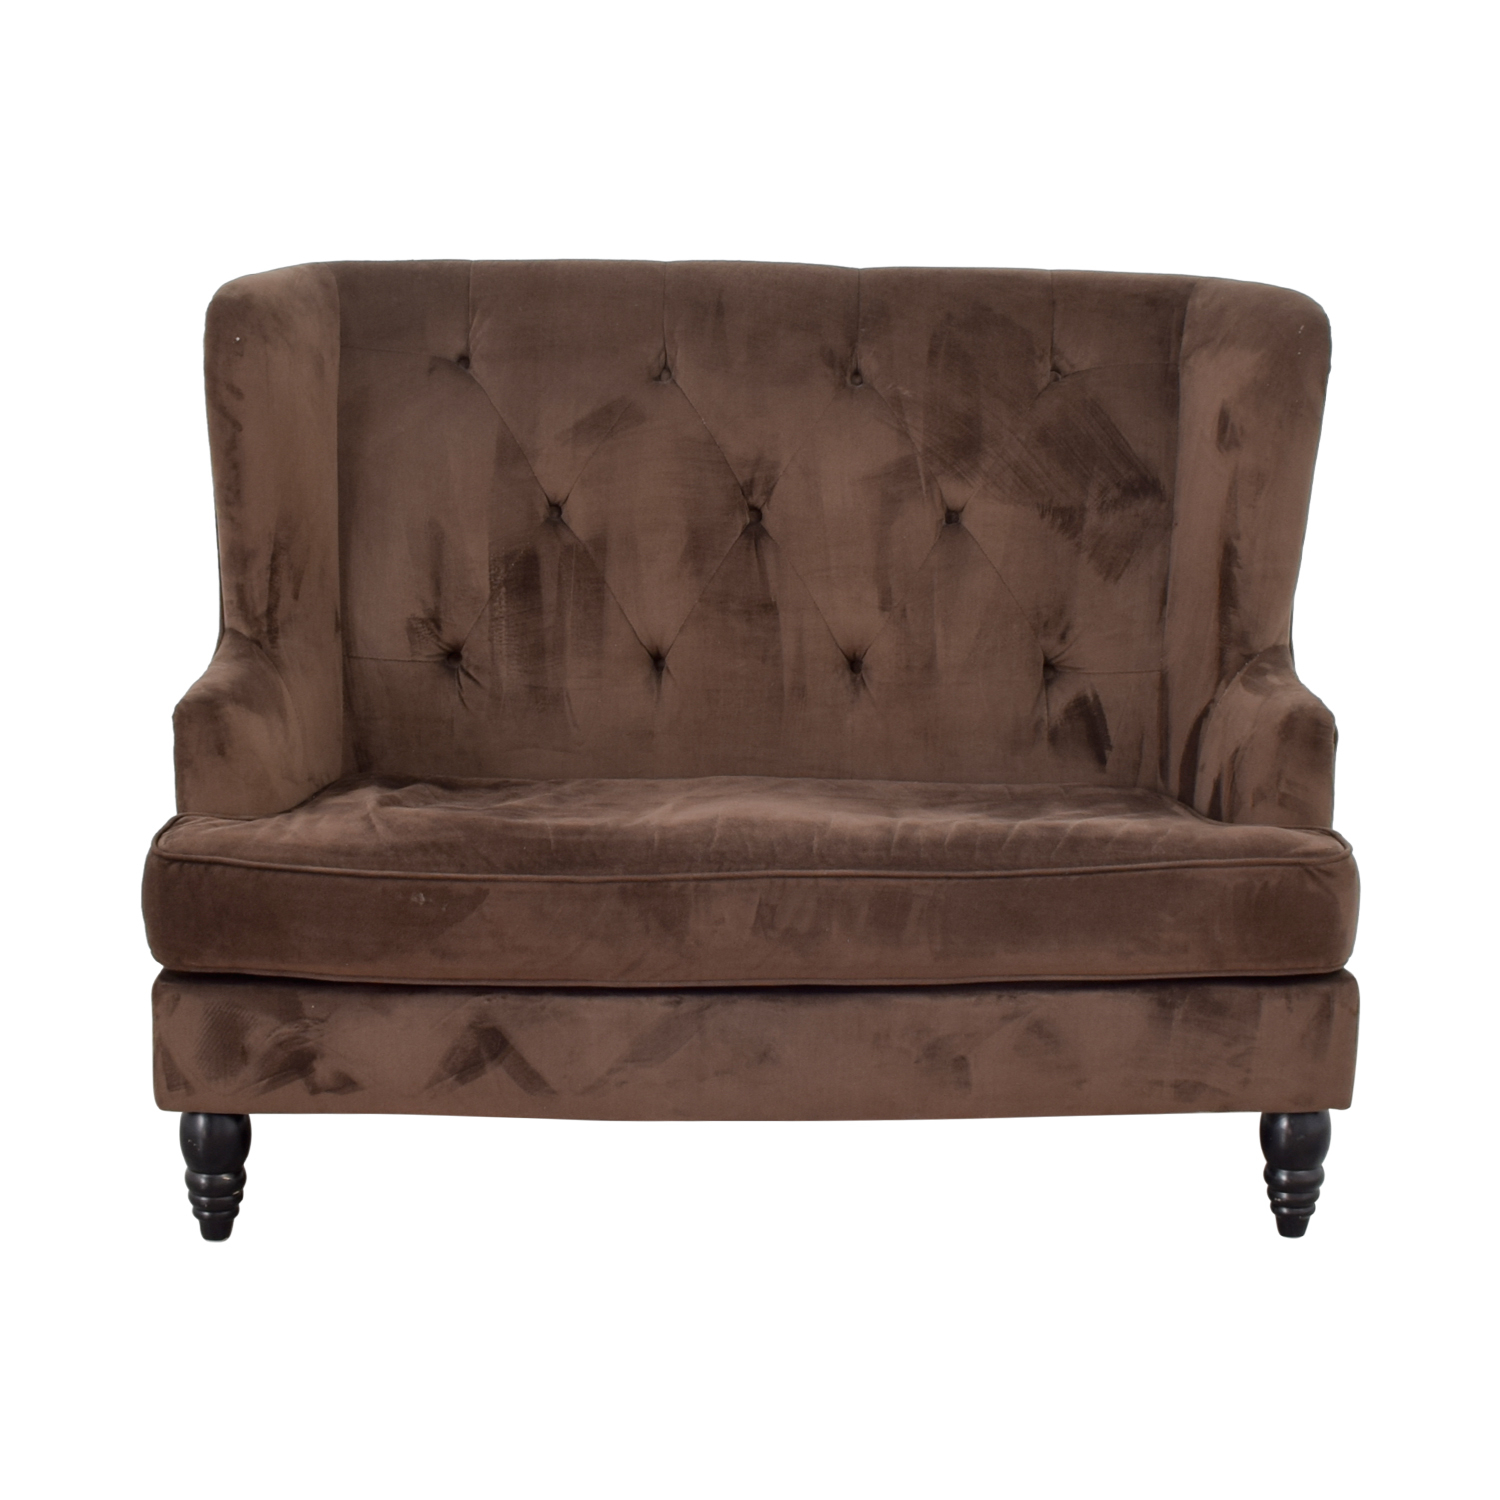 73% Off – Cb2 Cb2 Brown Tufted High Back Loveseat / Sofas Regarding Sofas With High Backs (View 8 of 15)